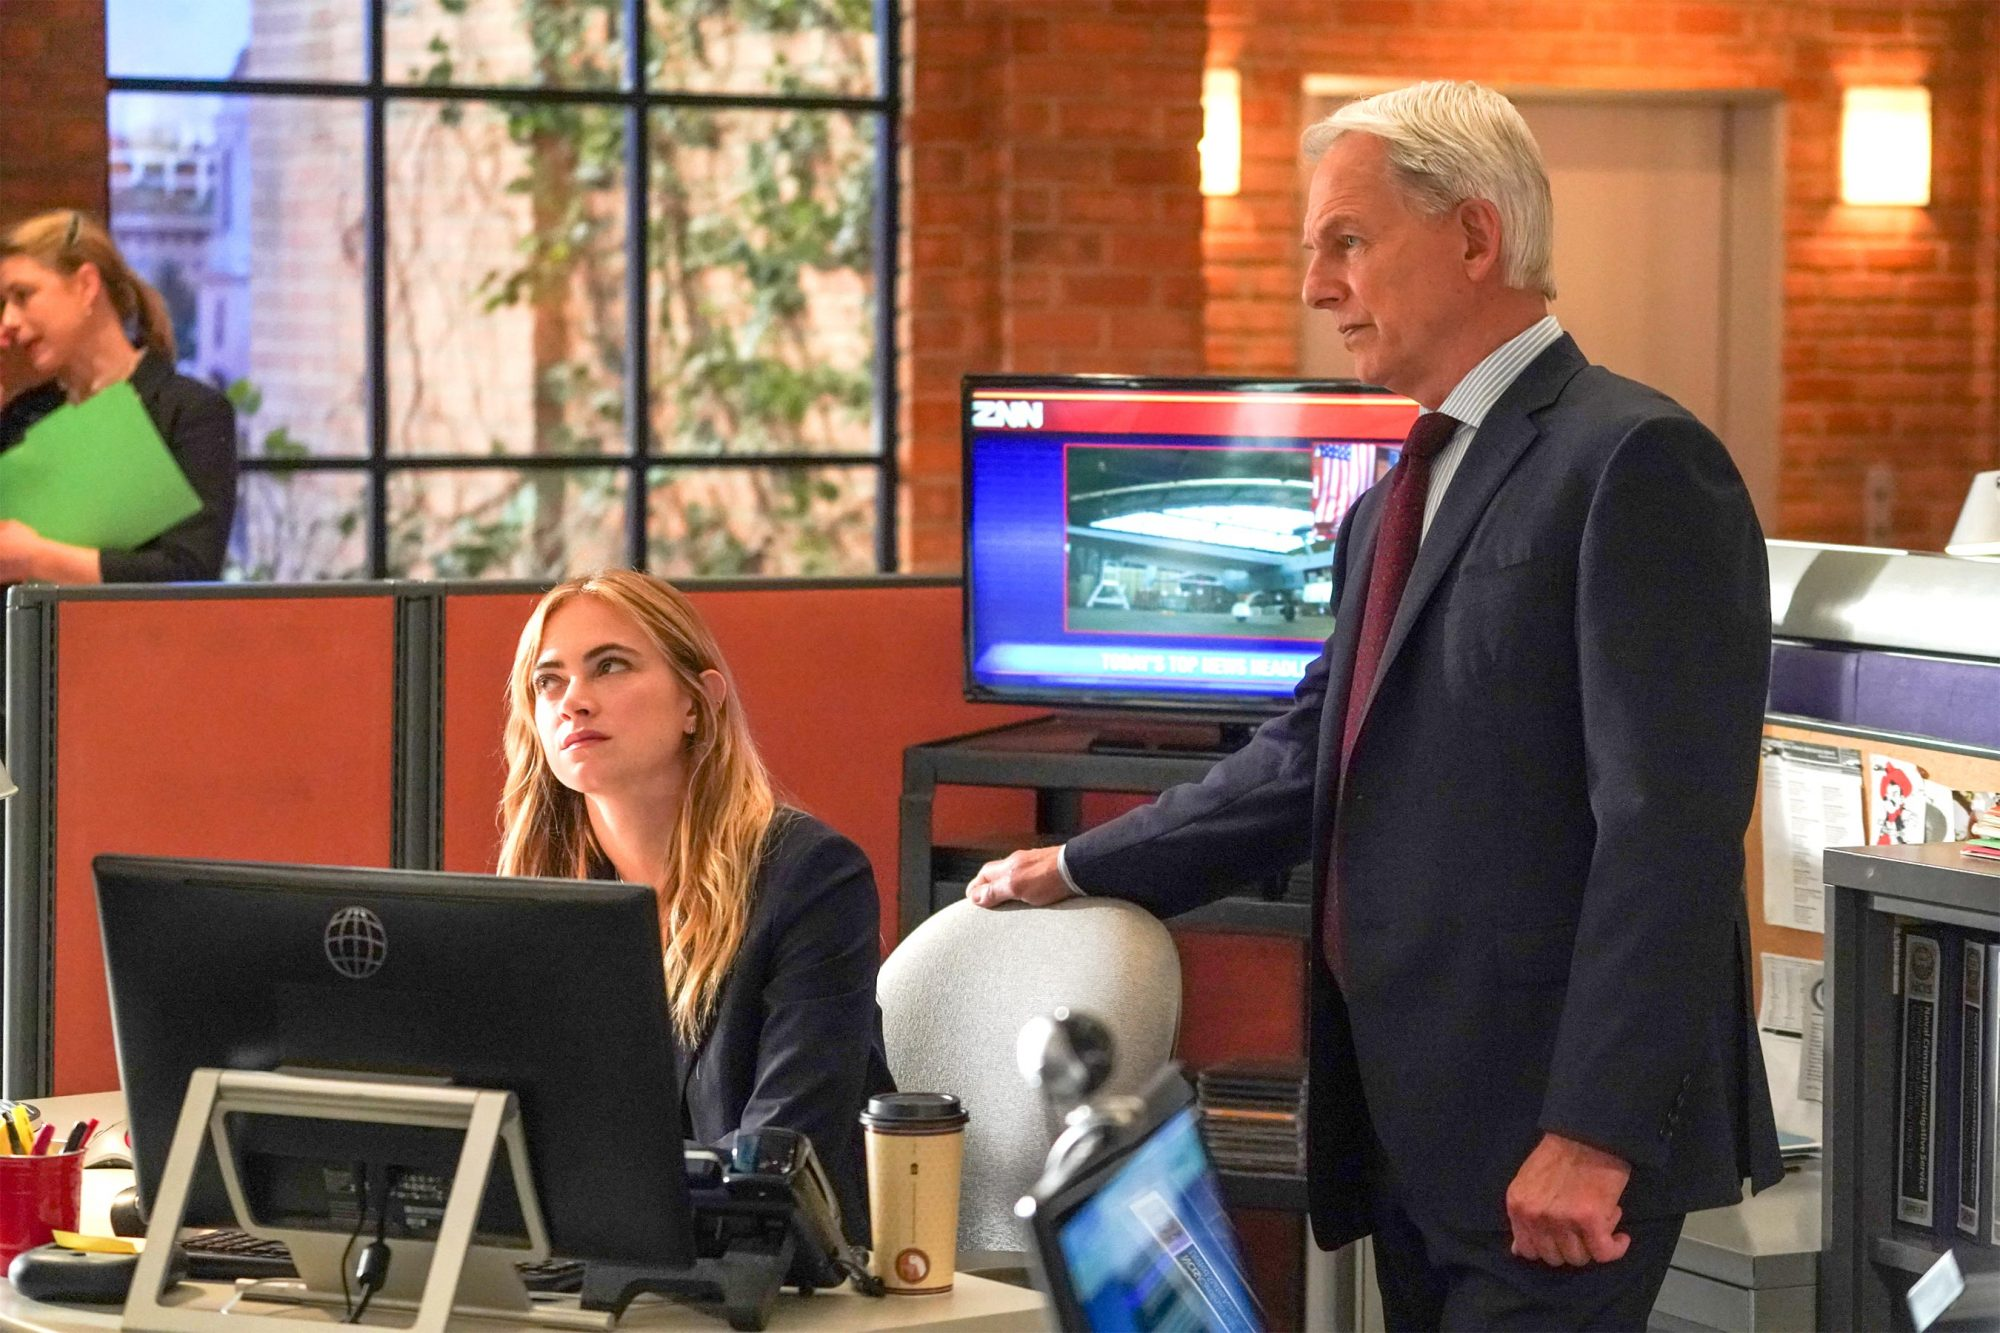 """Judge, Jury--¦"" -- After entering cold case DNA into the system, Kasie solves a 30-year-old murder case, but a loophole in the legal system may set the suspect free. Also, McGee visits an elite technology company in Silicon Valley that is offering him a highly paid position, on NCIS, Tuesday, April 30 (8:00-9:00 PM, ET/PT) on the CBS Television Network. Pictured: Emily Wickersham as NCIS Special Agent Eleanor ""Ellie"" Bishop, Mark Harmon as NCIS Special Agent Leroy Jethro Gibbs. Photo: Ali Goldstein/CBS В©2019 CBS Broadcasting, Inc. All Rights Reserved"